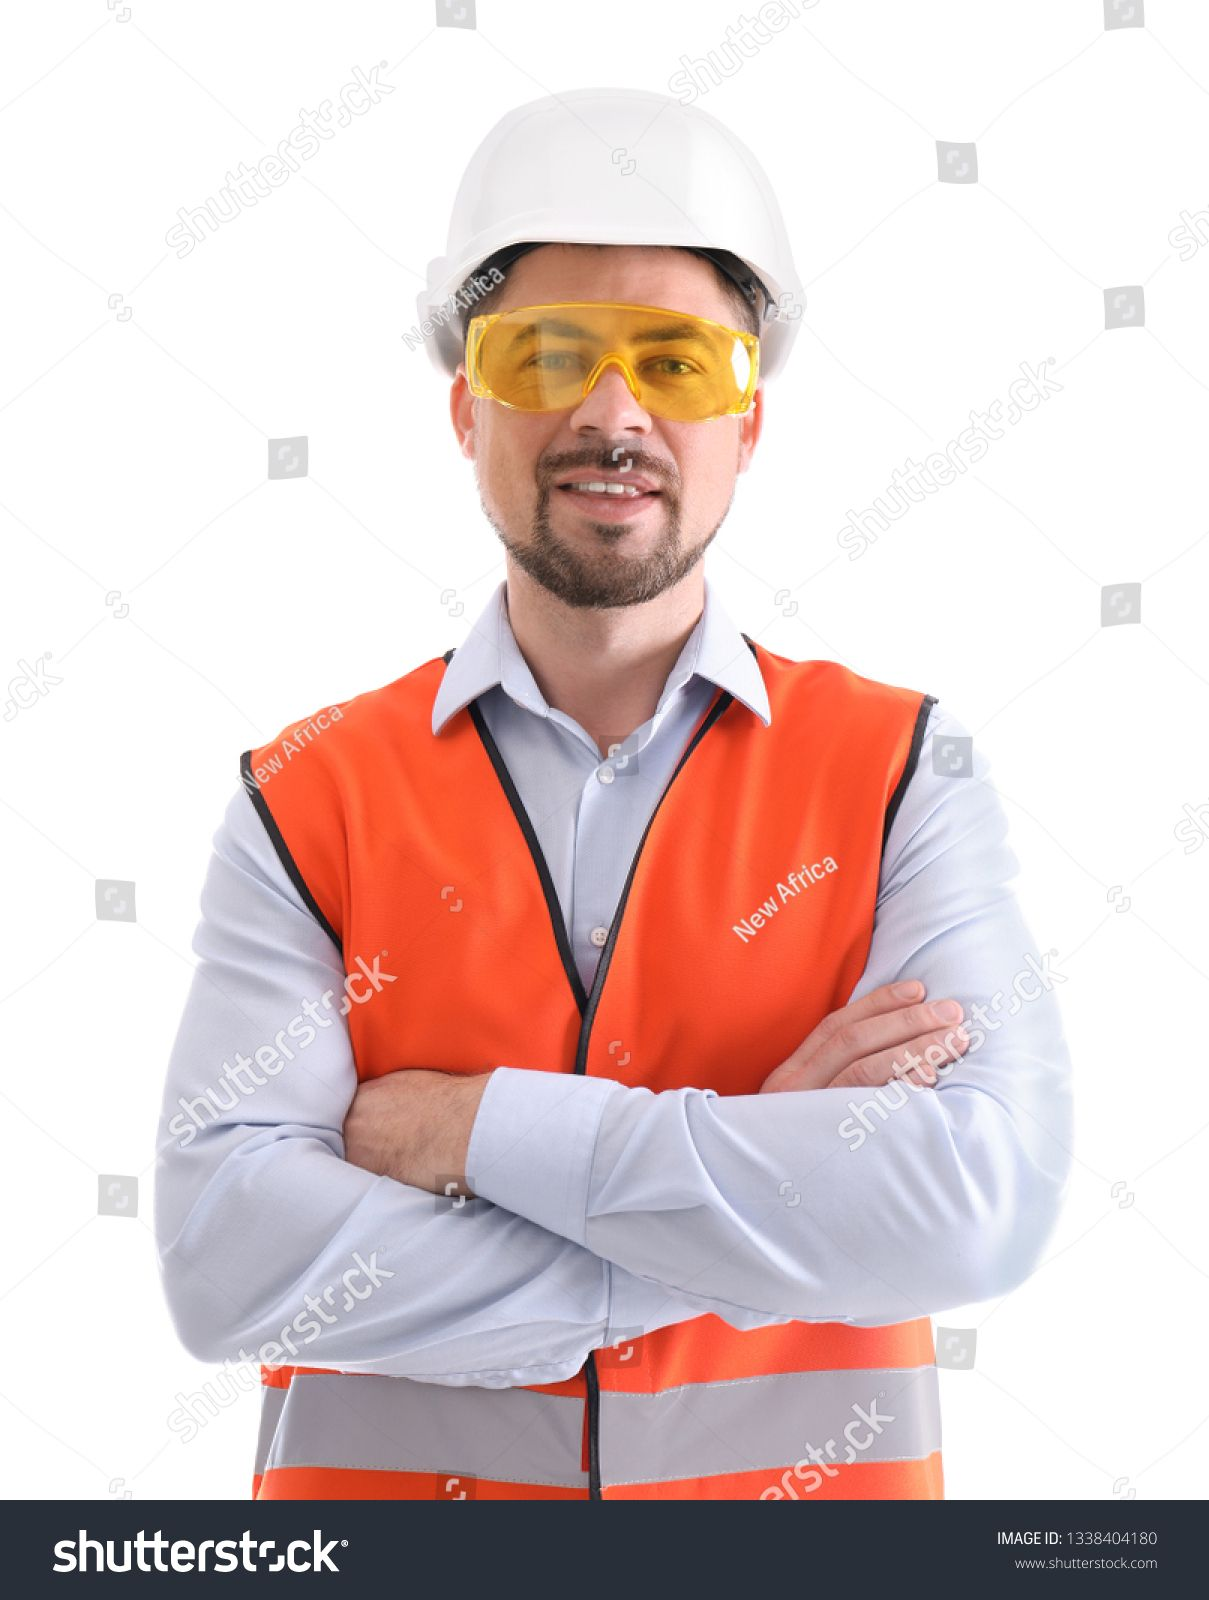 Male industrial engineer in uniform on white background